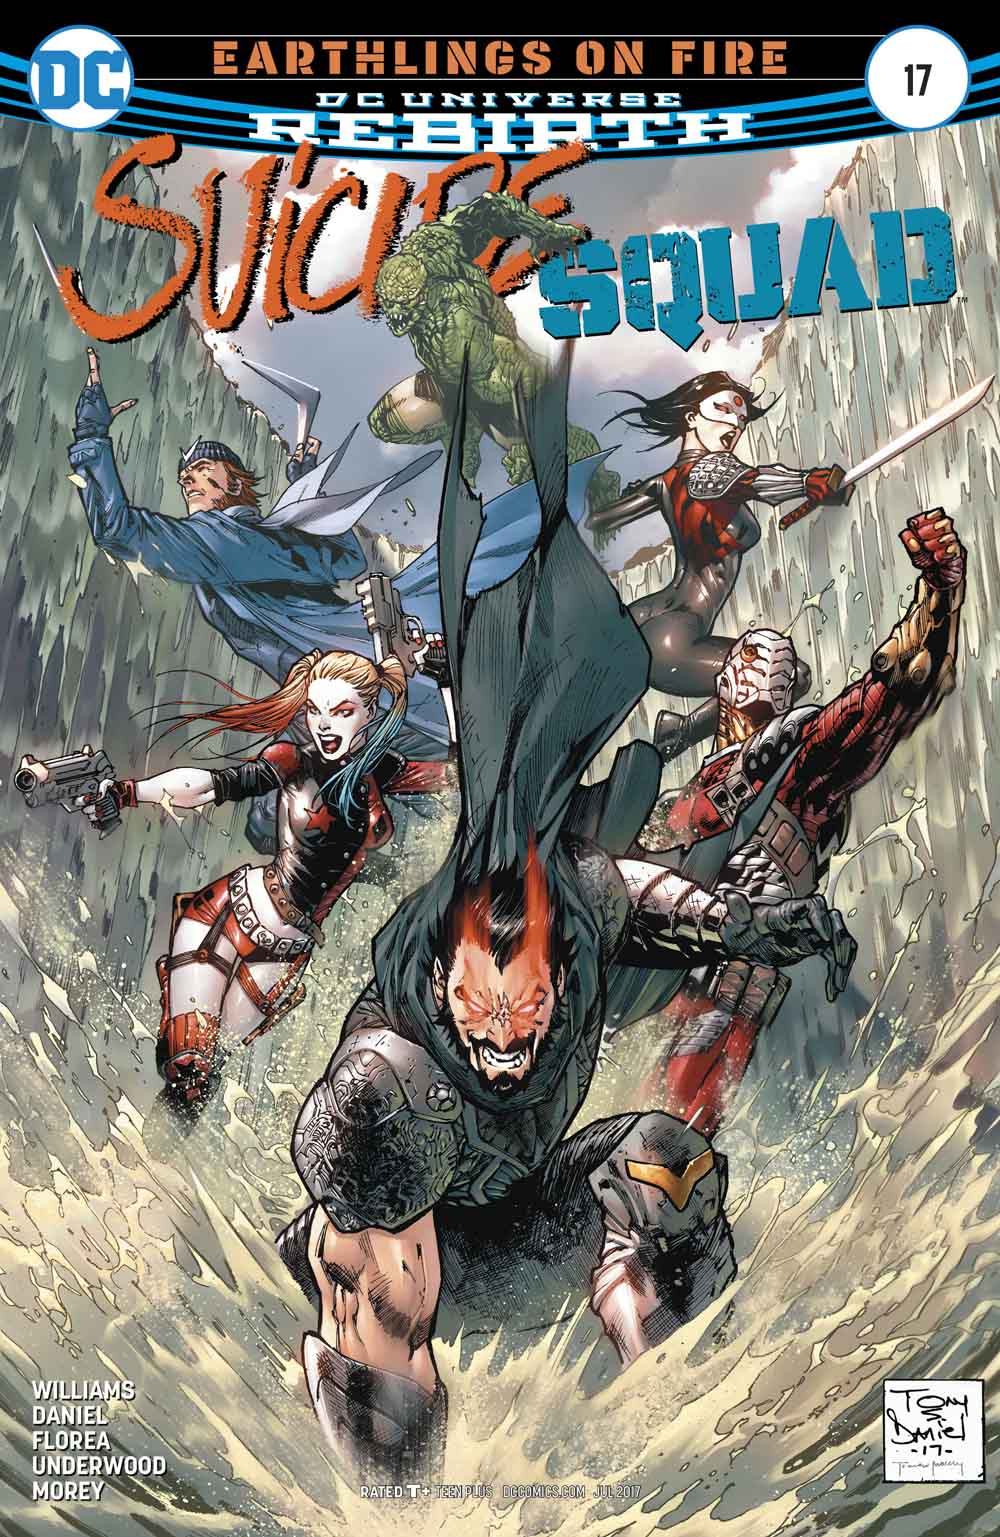 Suicide Squad 17 - Earthlings on Fire 2